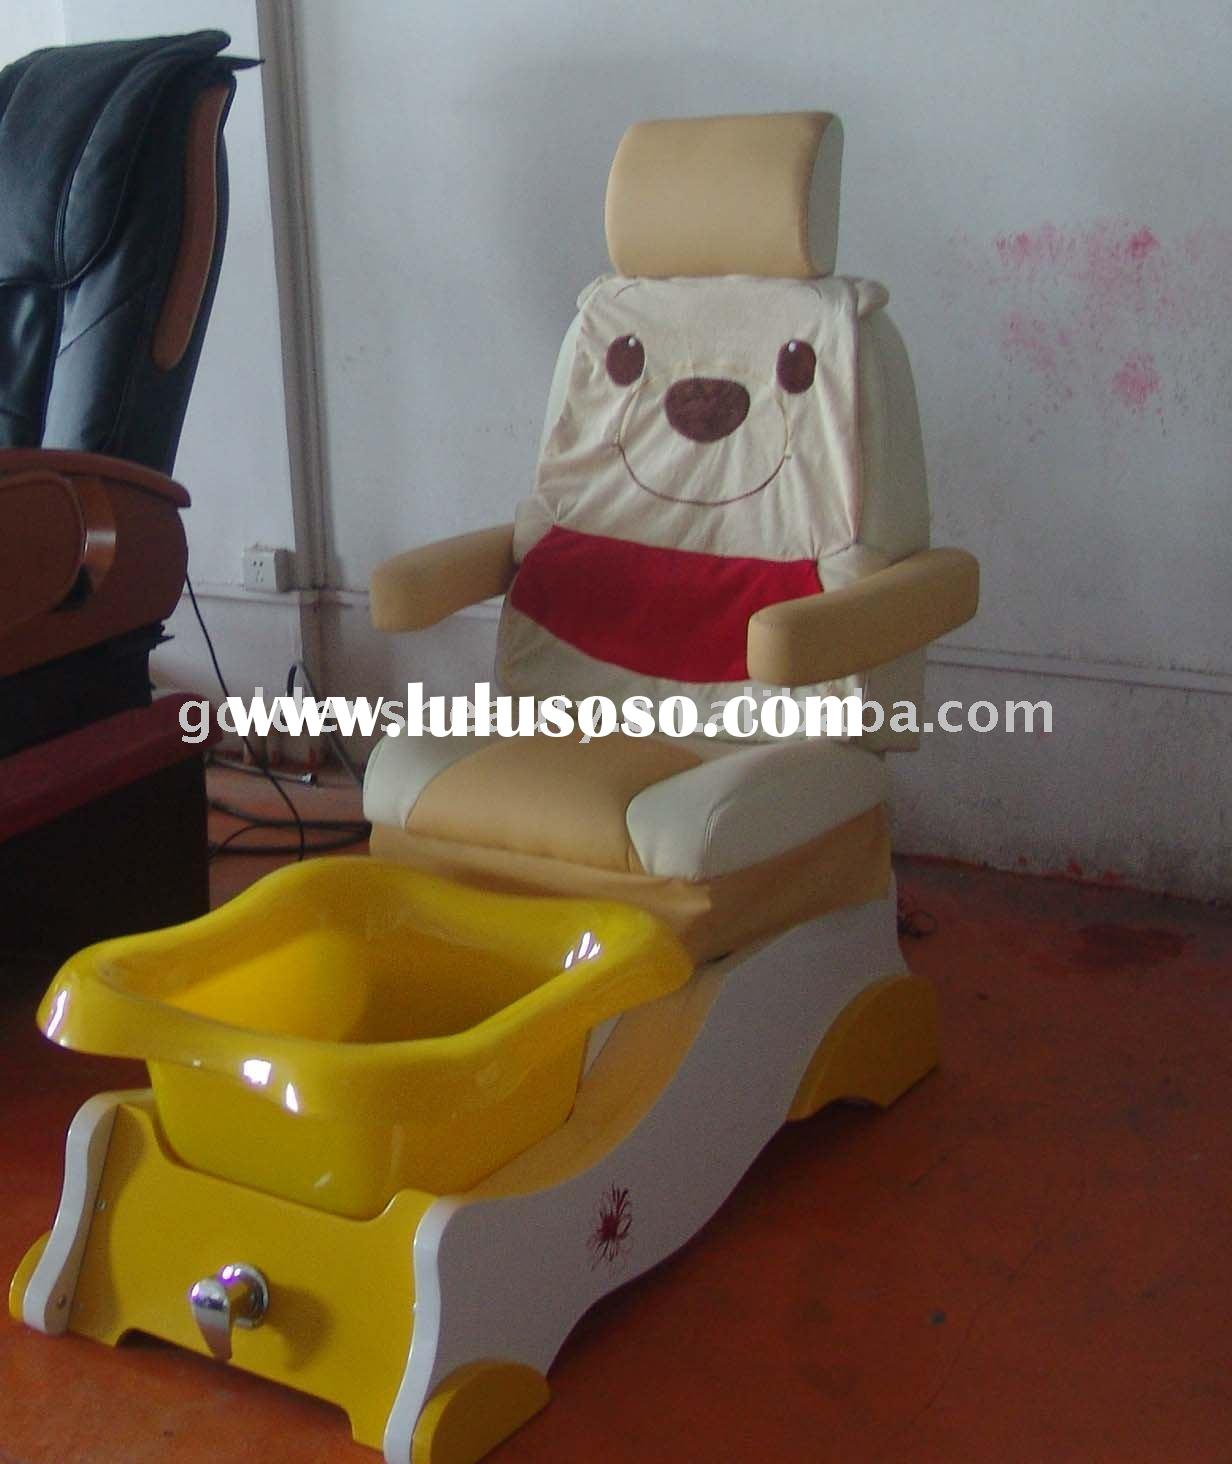 children pedicure spa,pipeless pedicure spa,salon chair,beauty chair,kids spa chair,massage chair